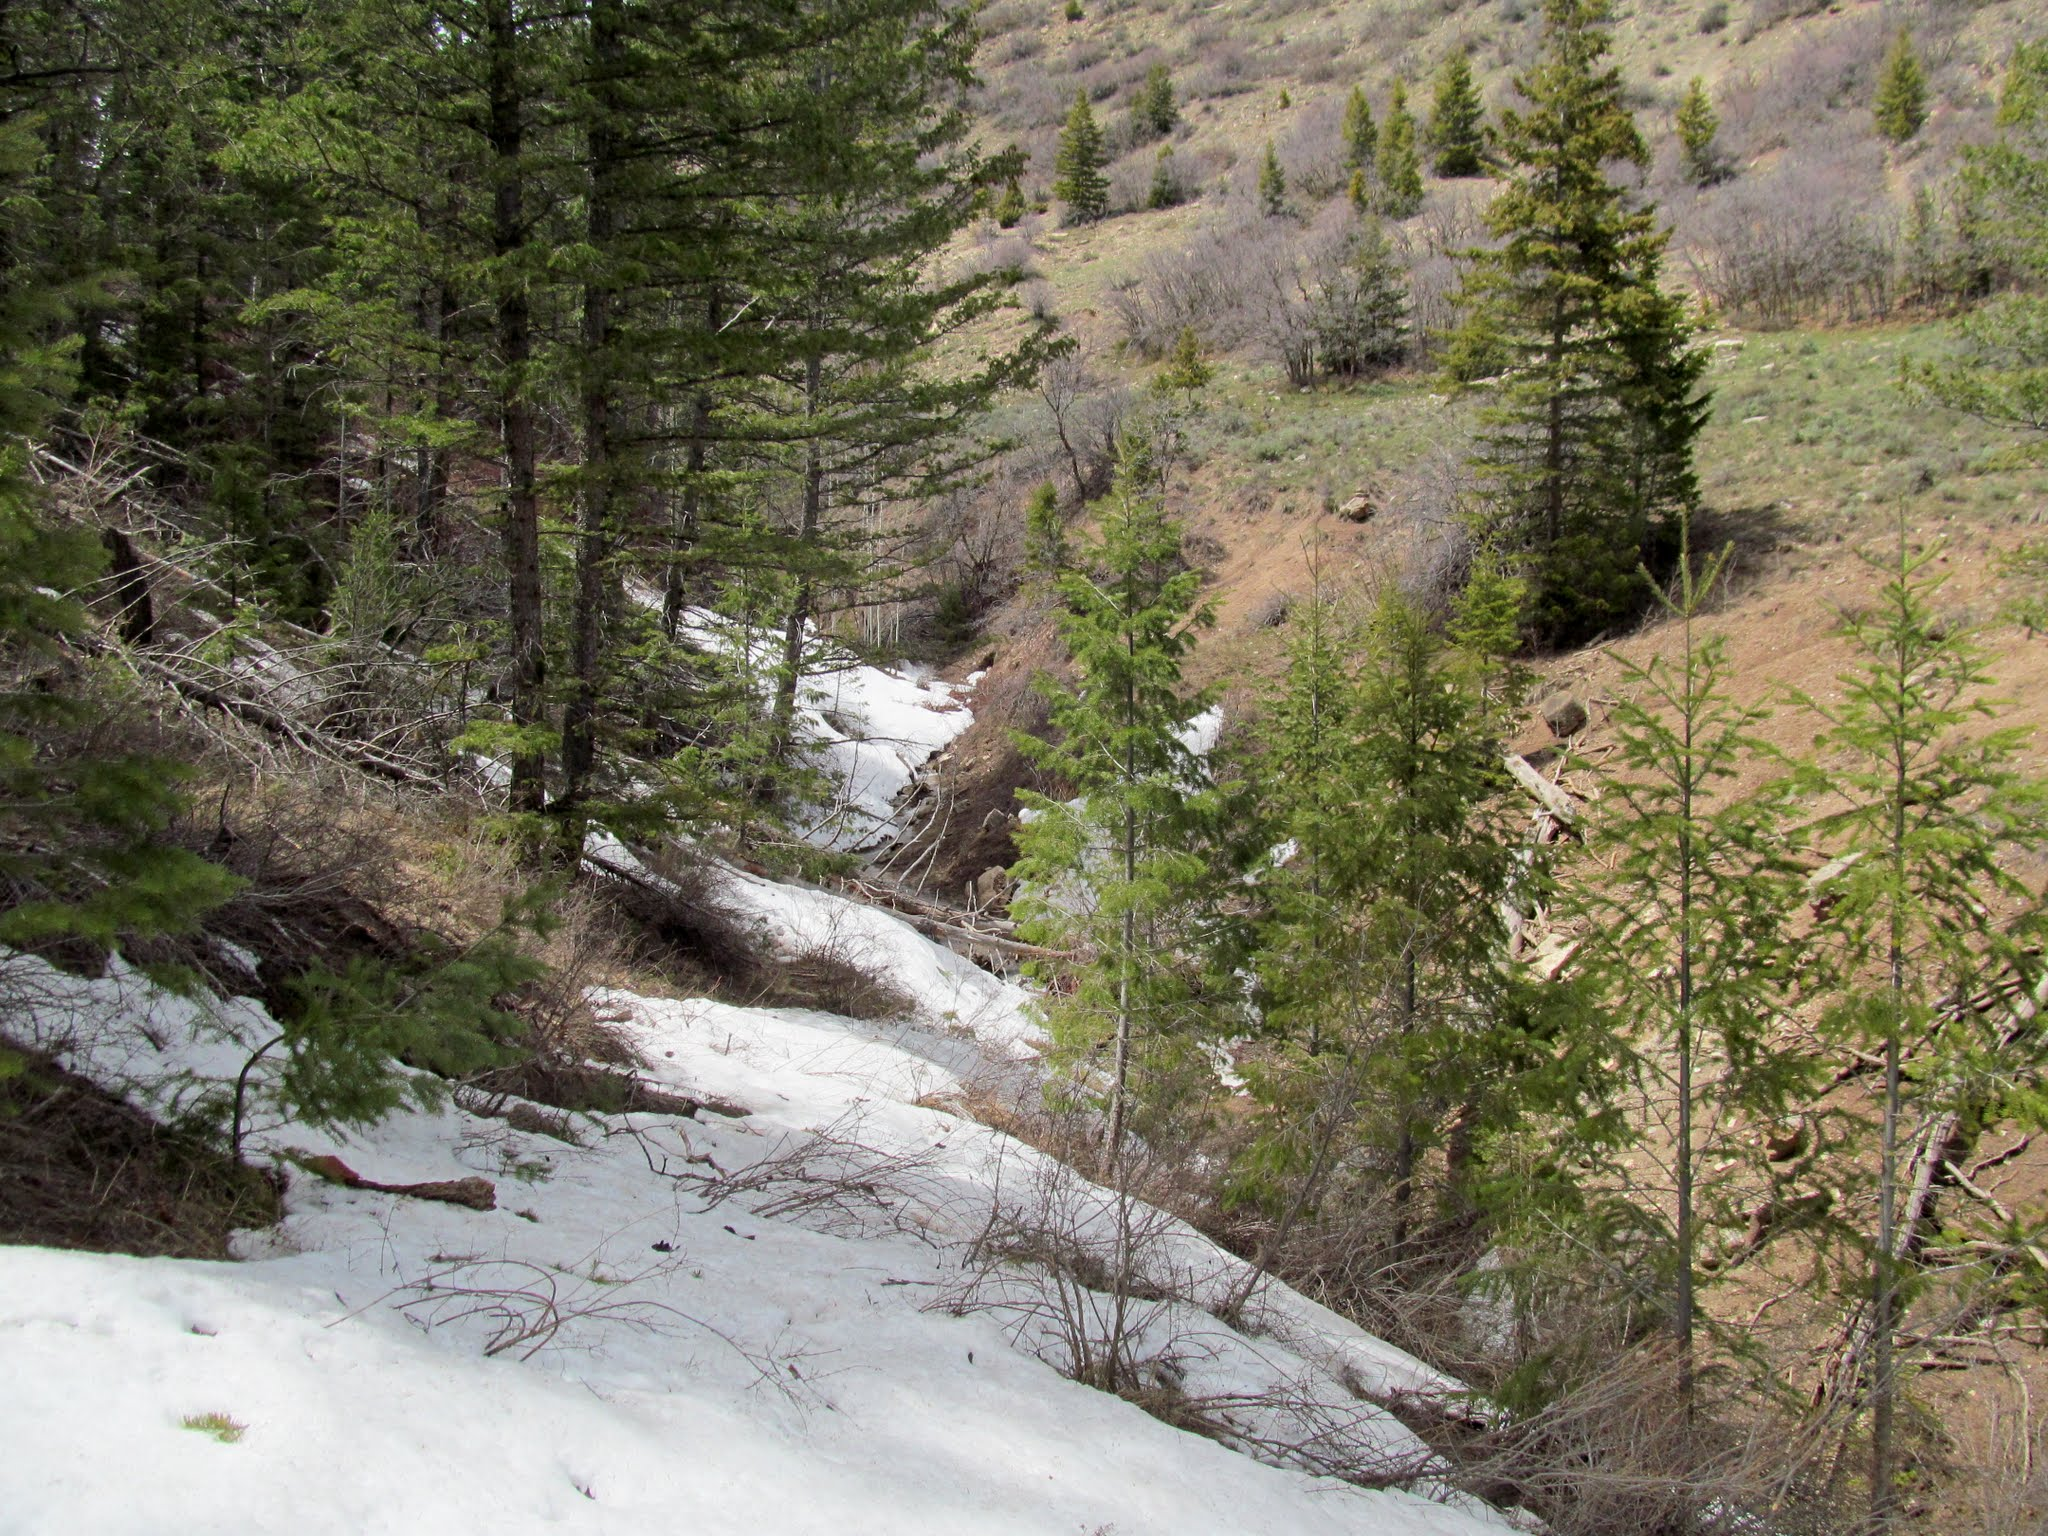 Photo: Snow on the lower trail